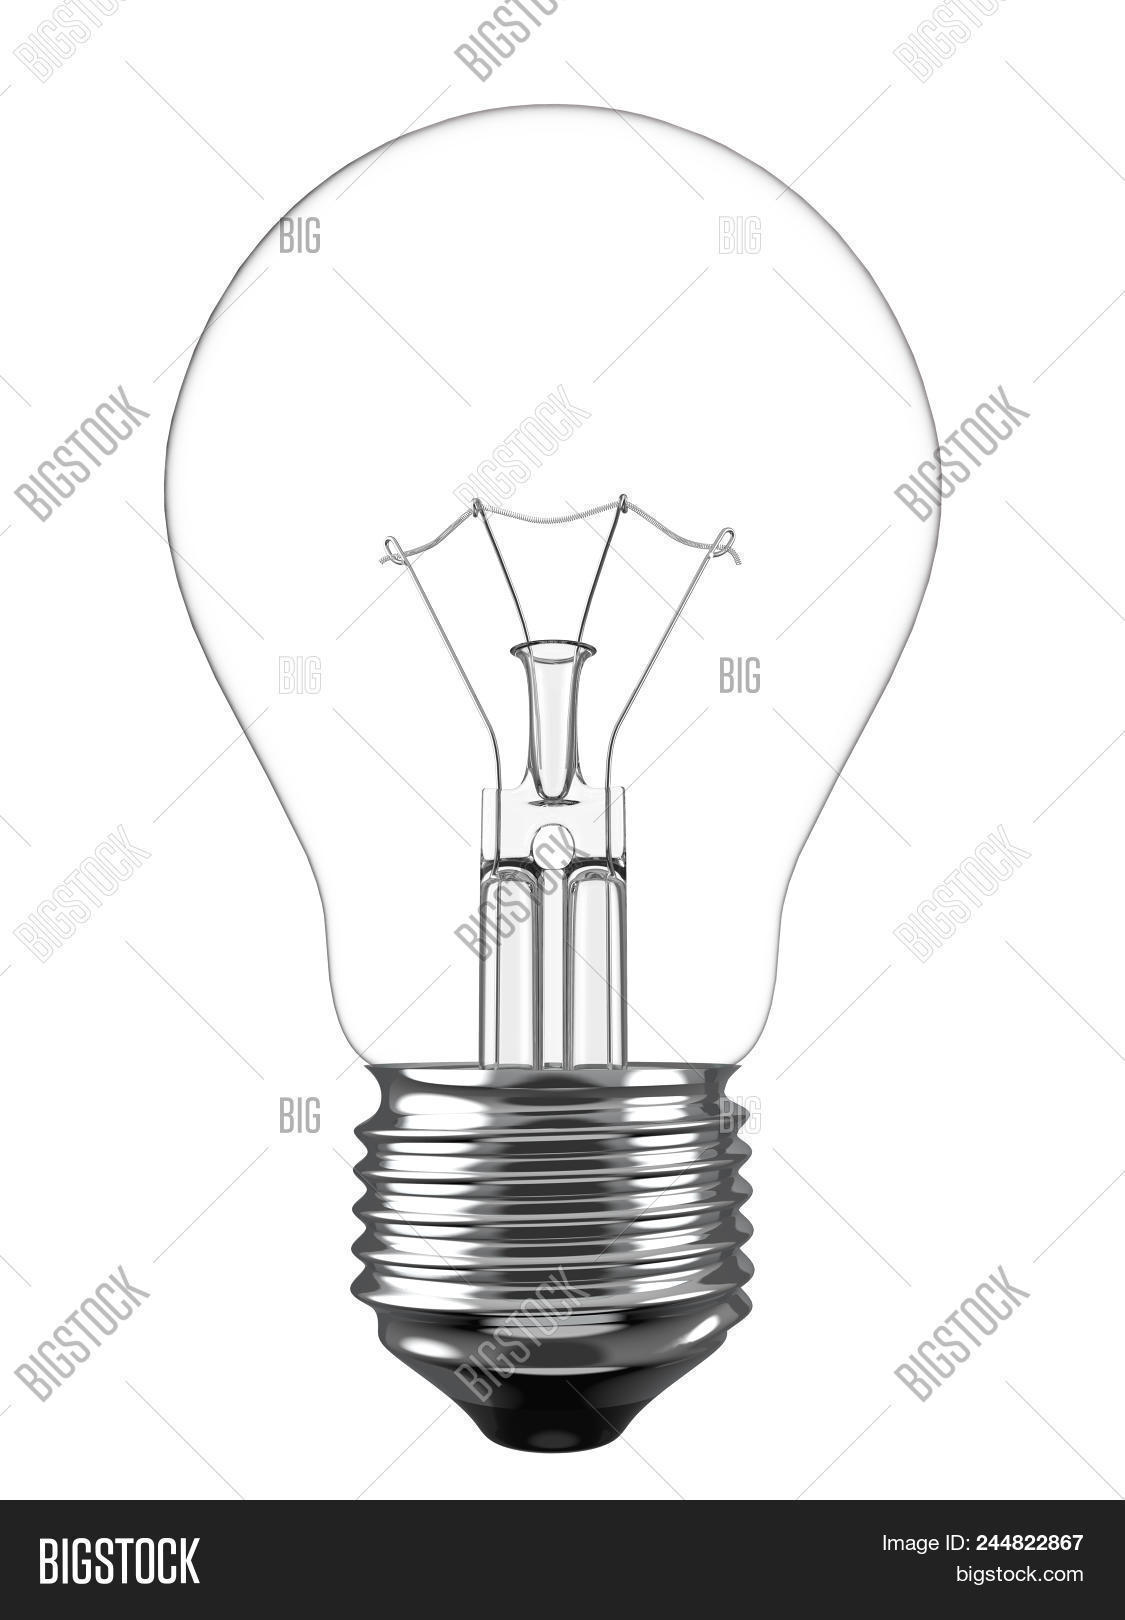 Electric Light Bulb Image Photo Free Trial Bigstock